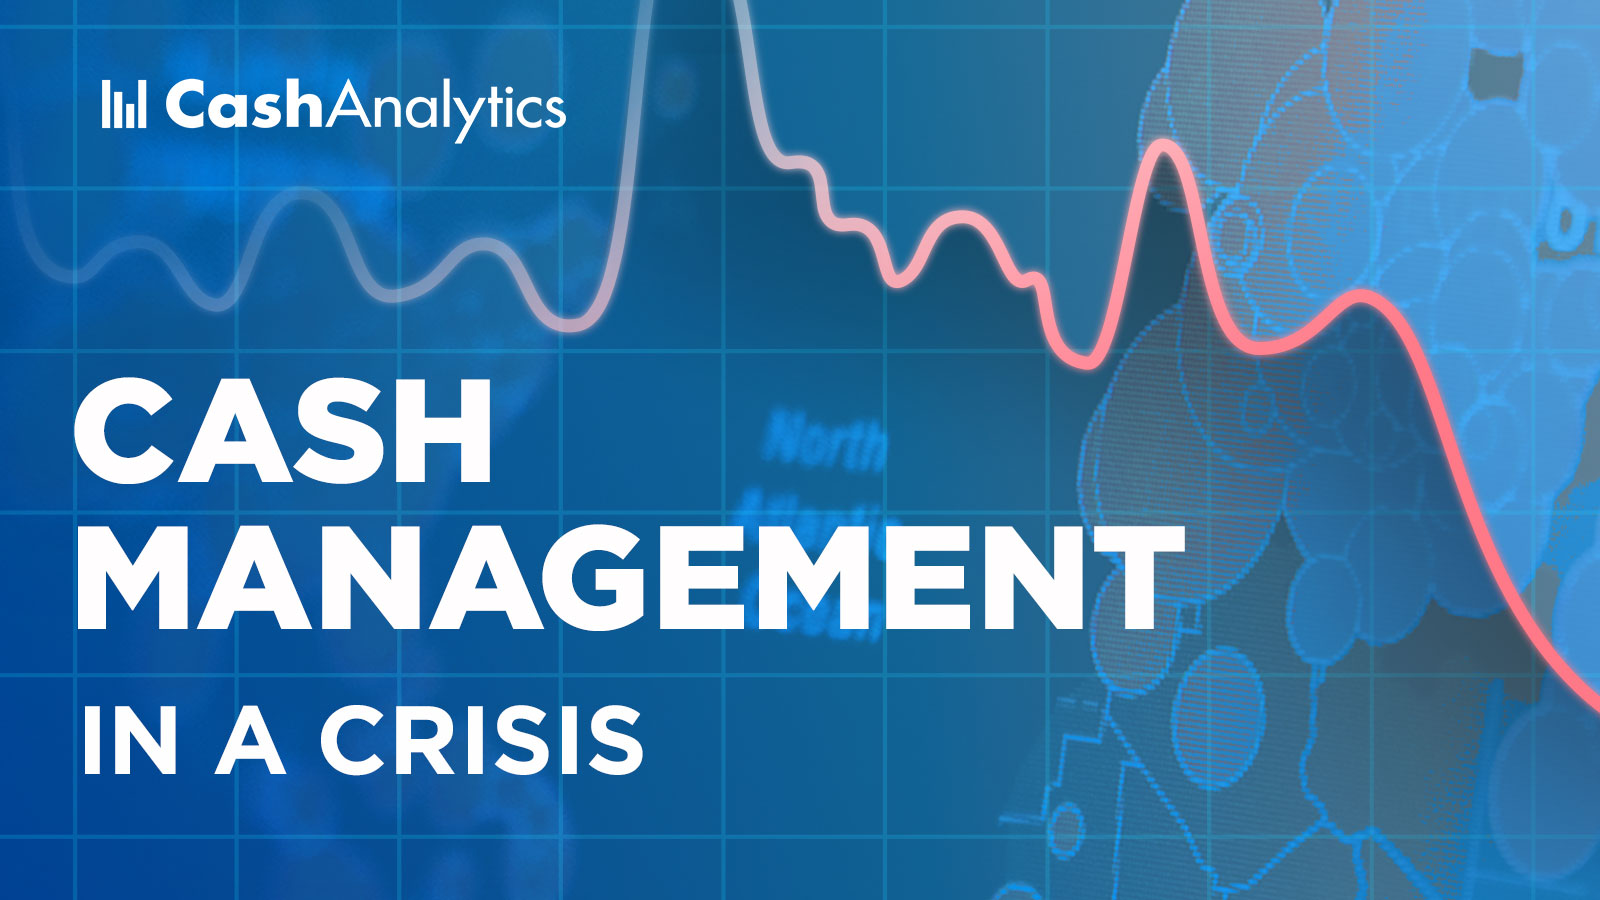 Cash management during a crisis